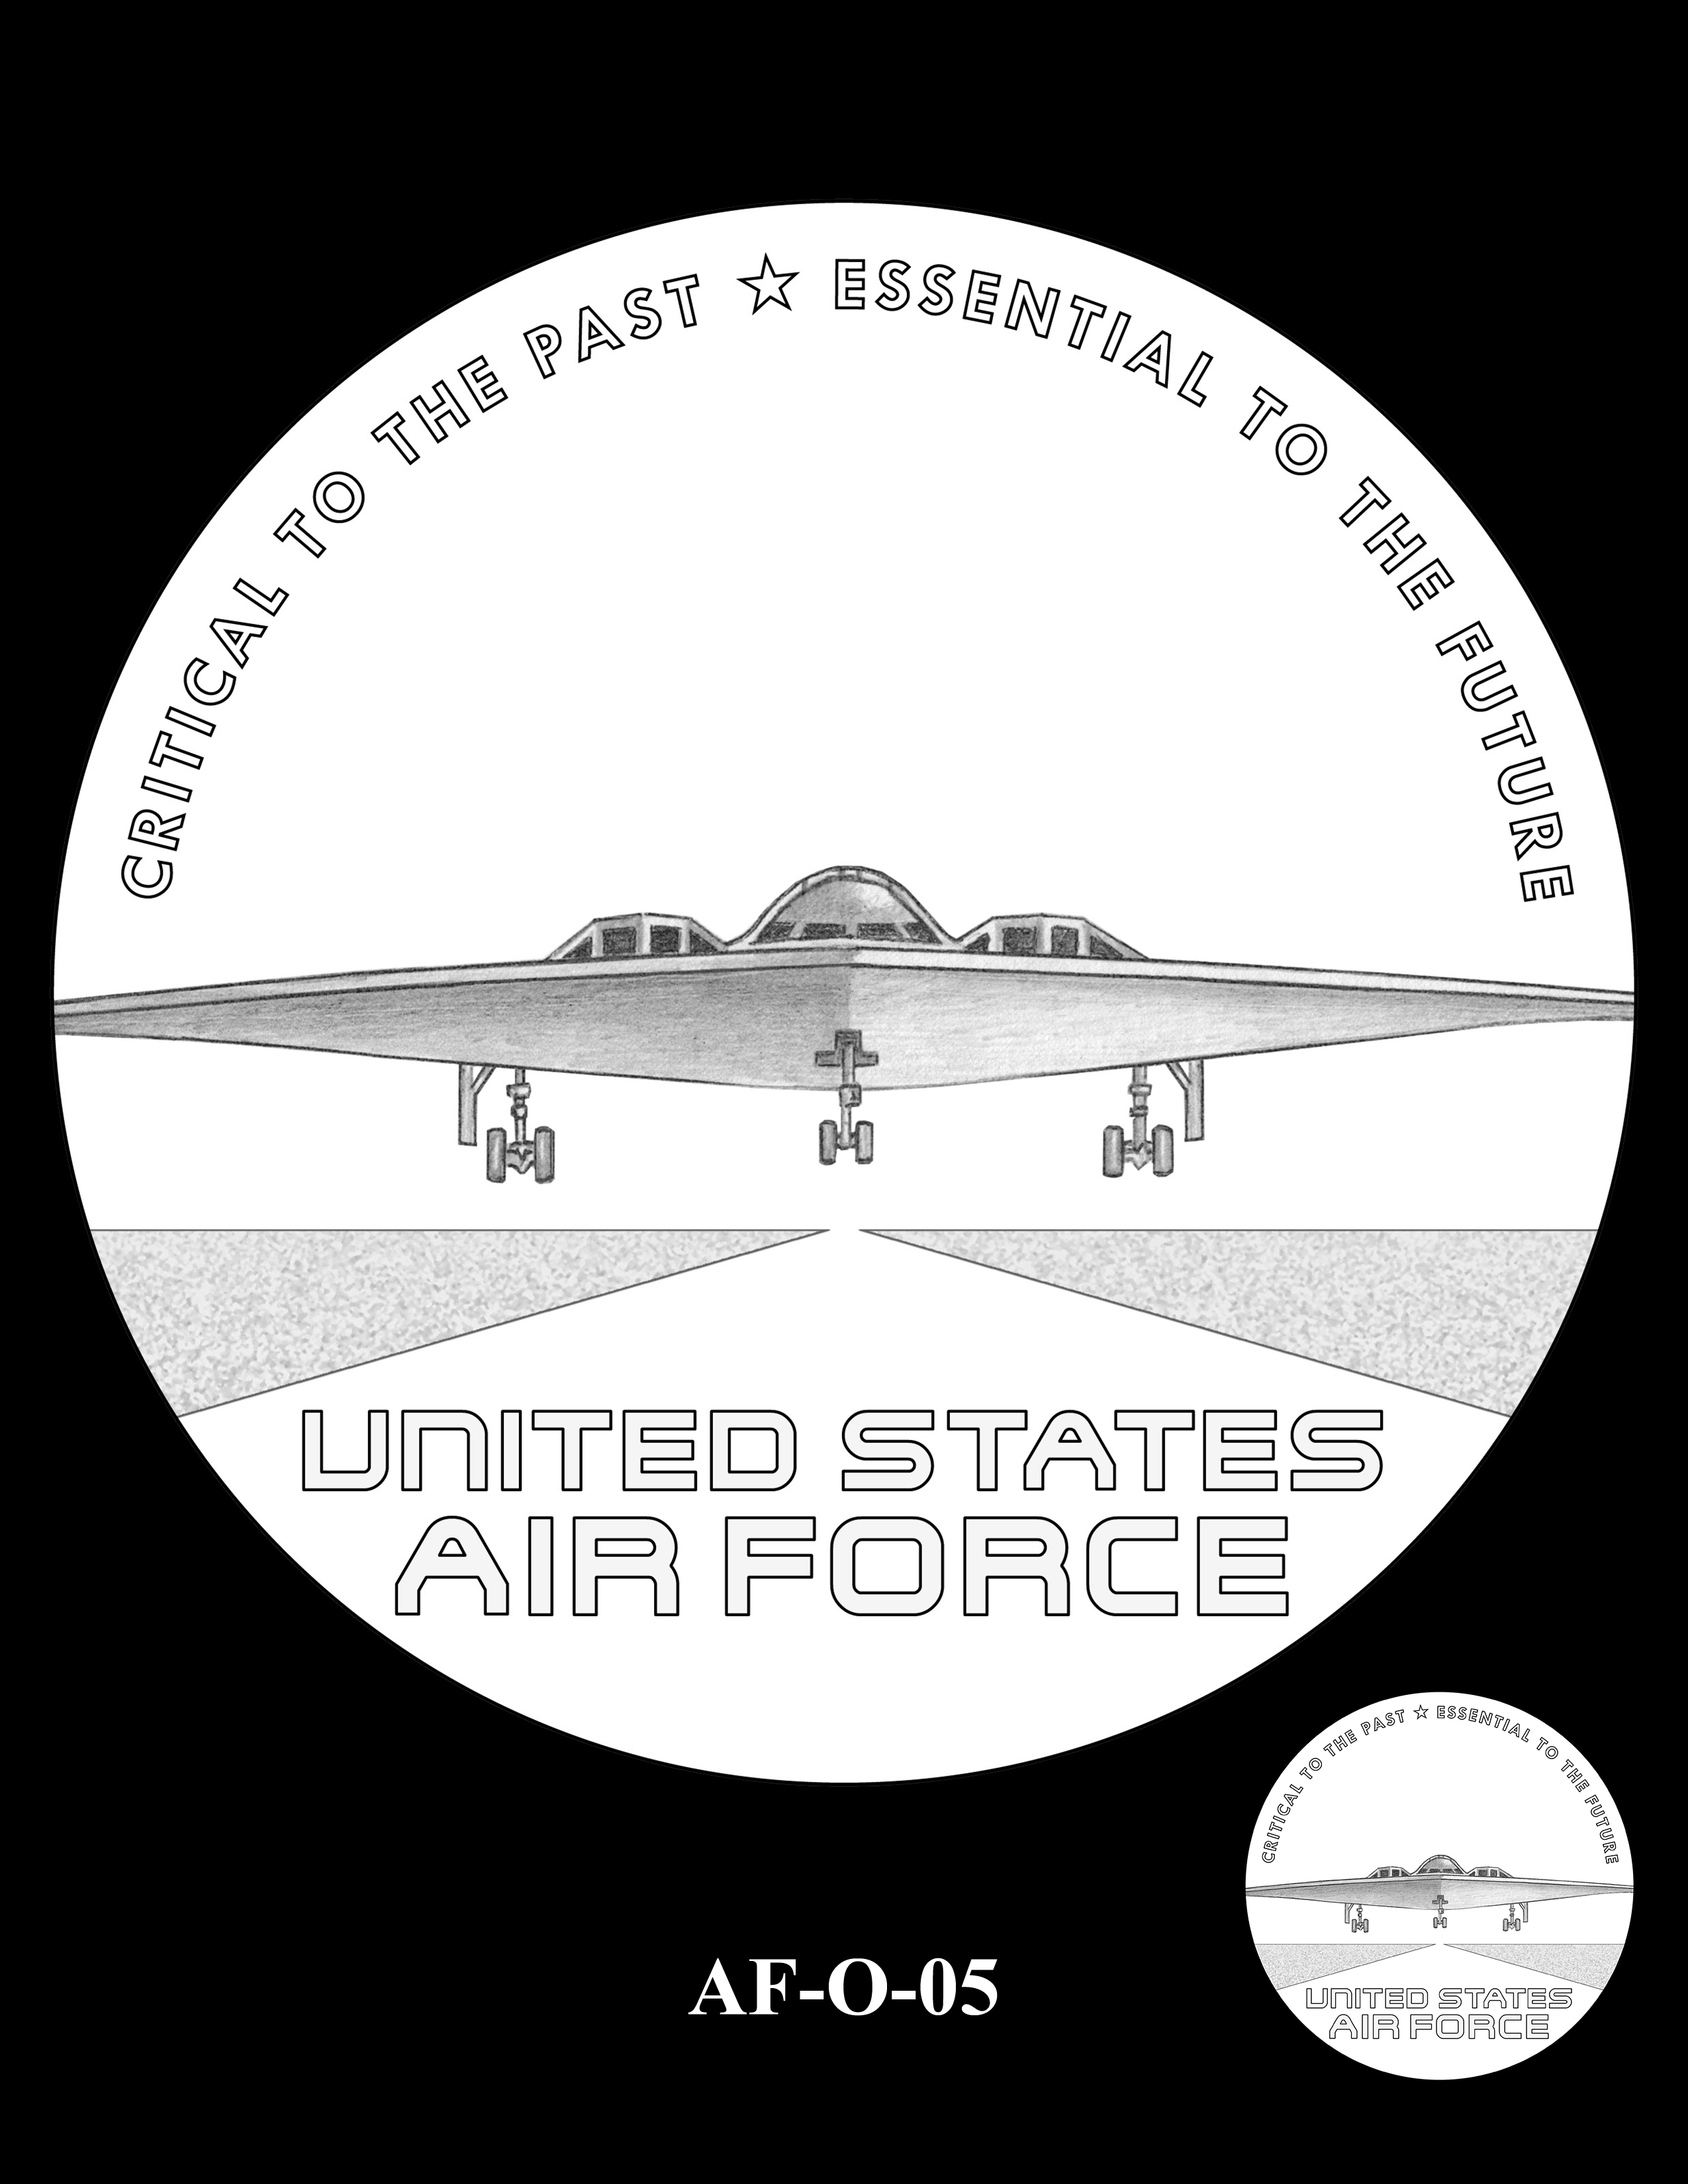 AF-O-05 -- Armed Forces Medal - Air Force